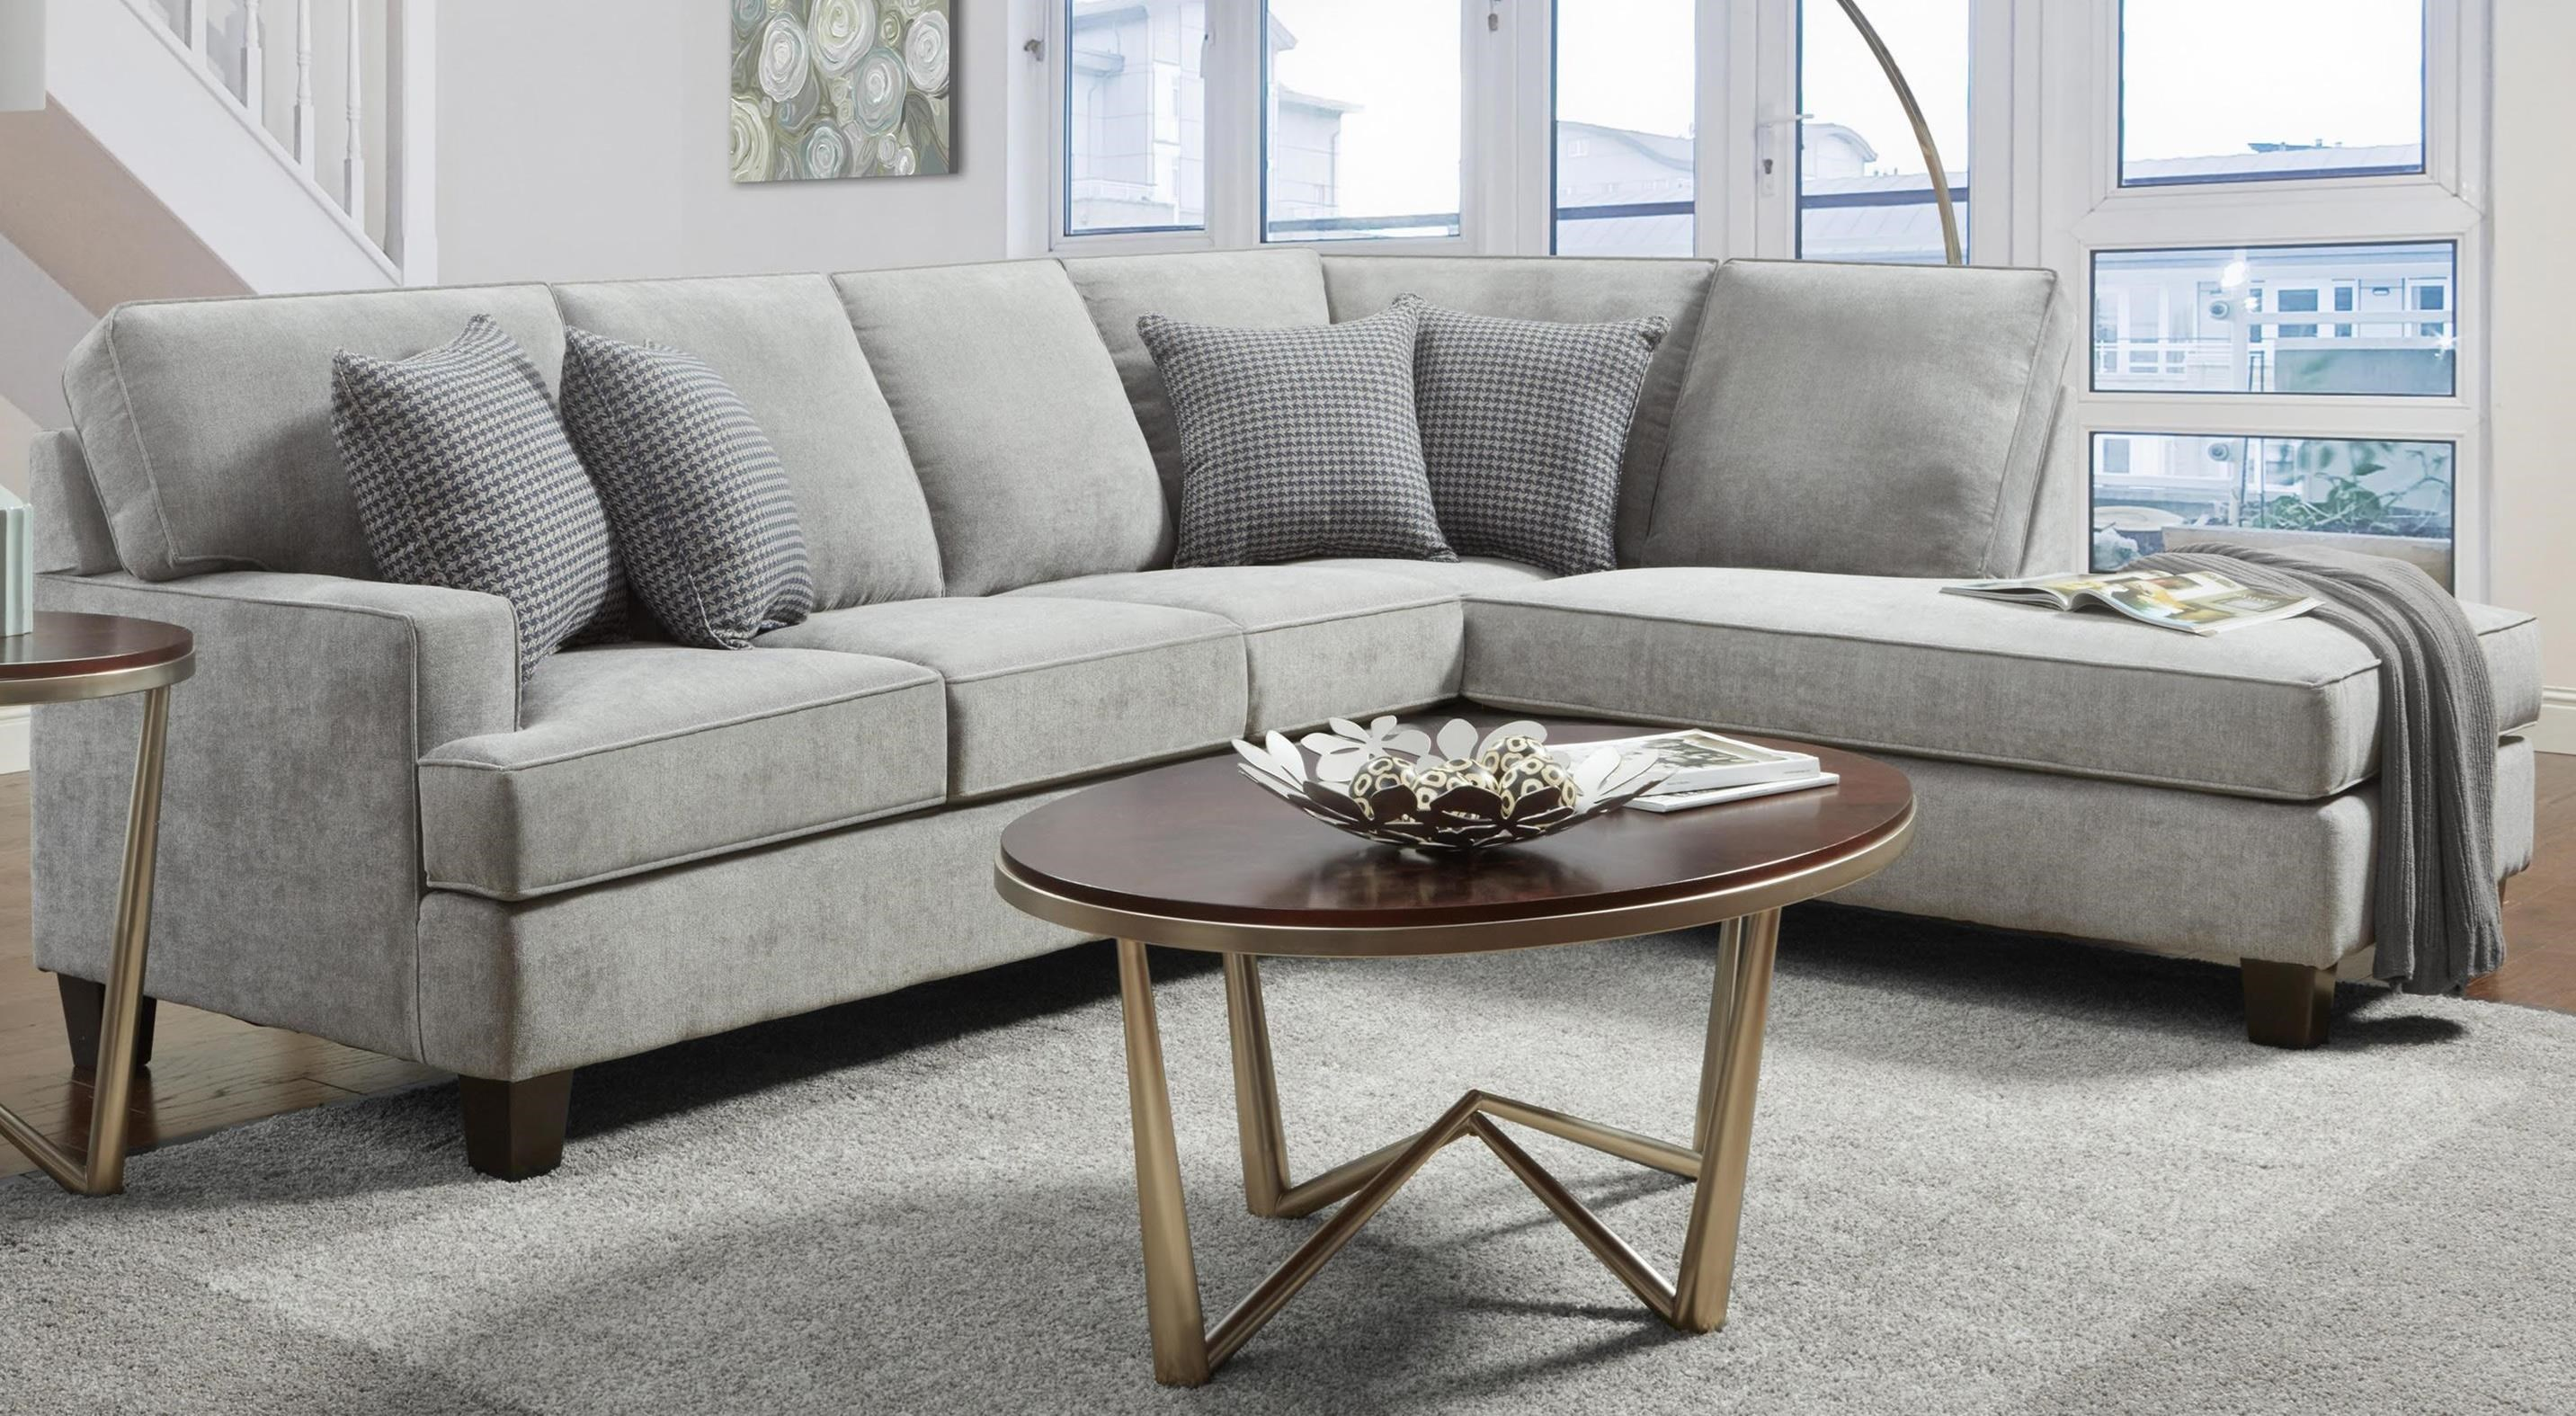 Melba 2PC Sectional Chaise Sofa at Rotmans